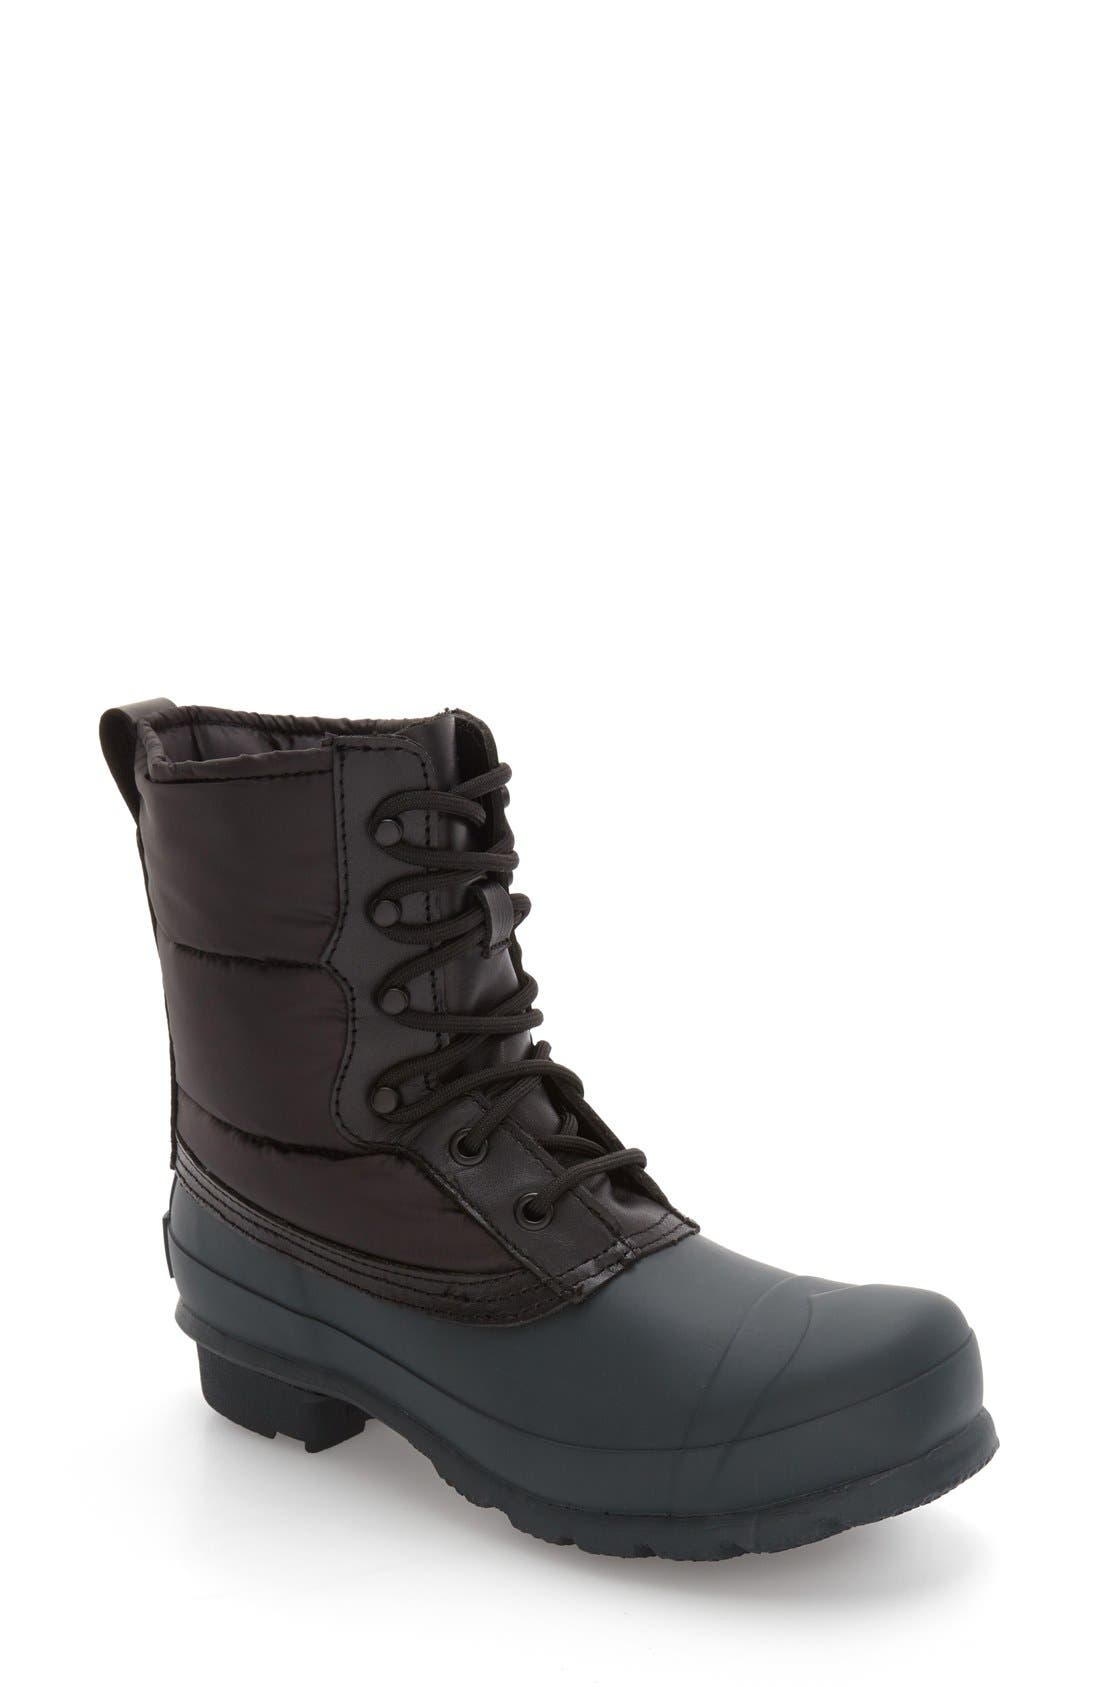 Main Image - Hunter 'Original Short' Quilted Lace-Up Boot (Women)